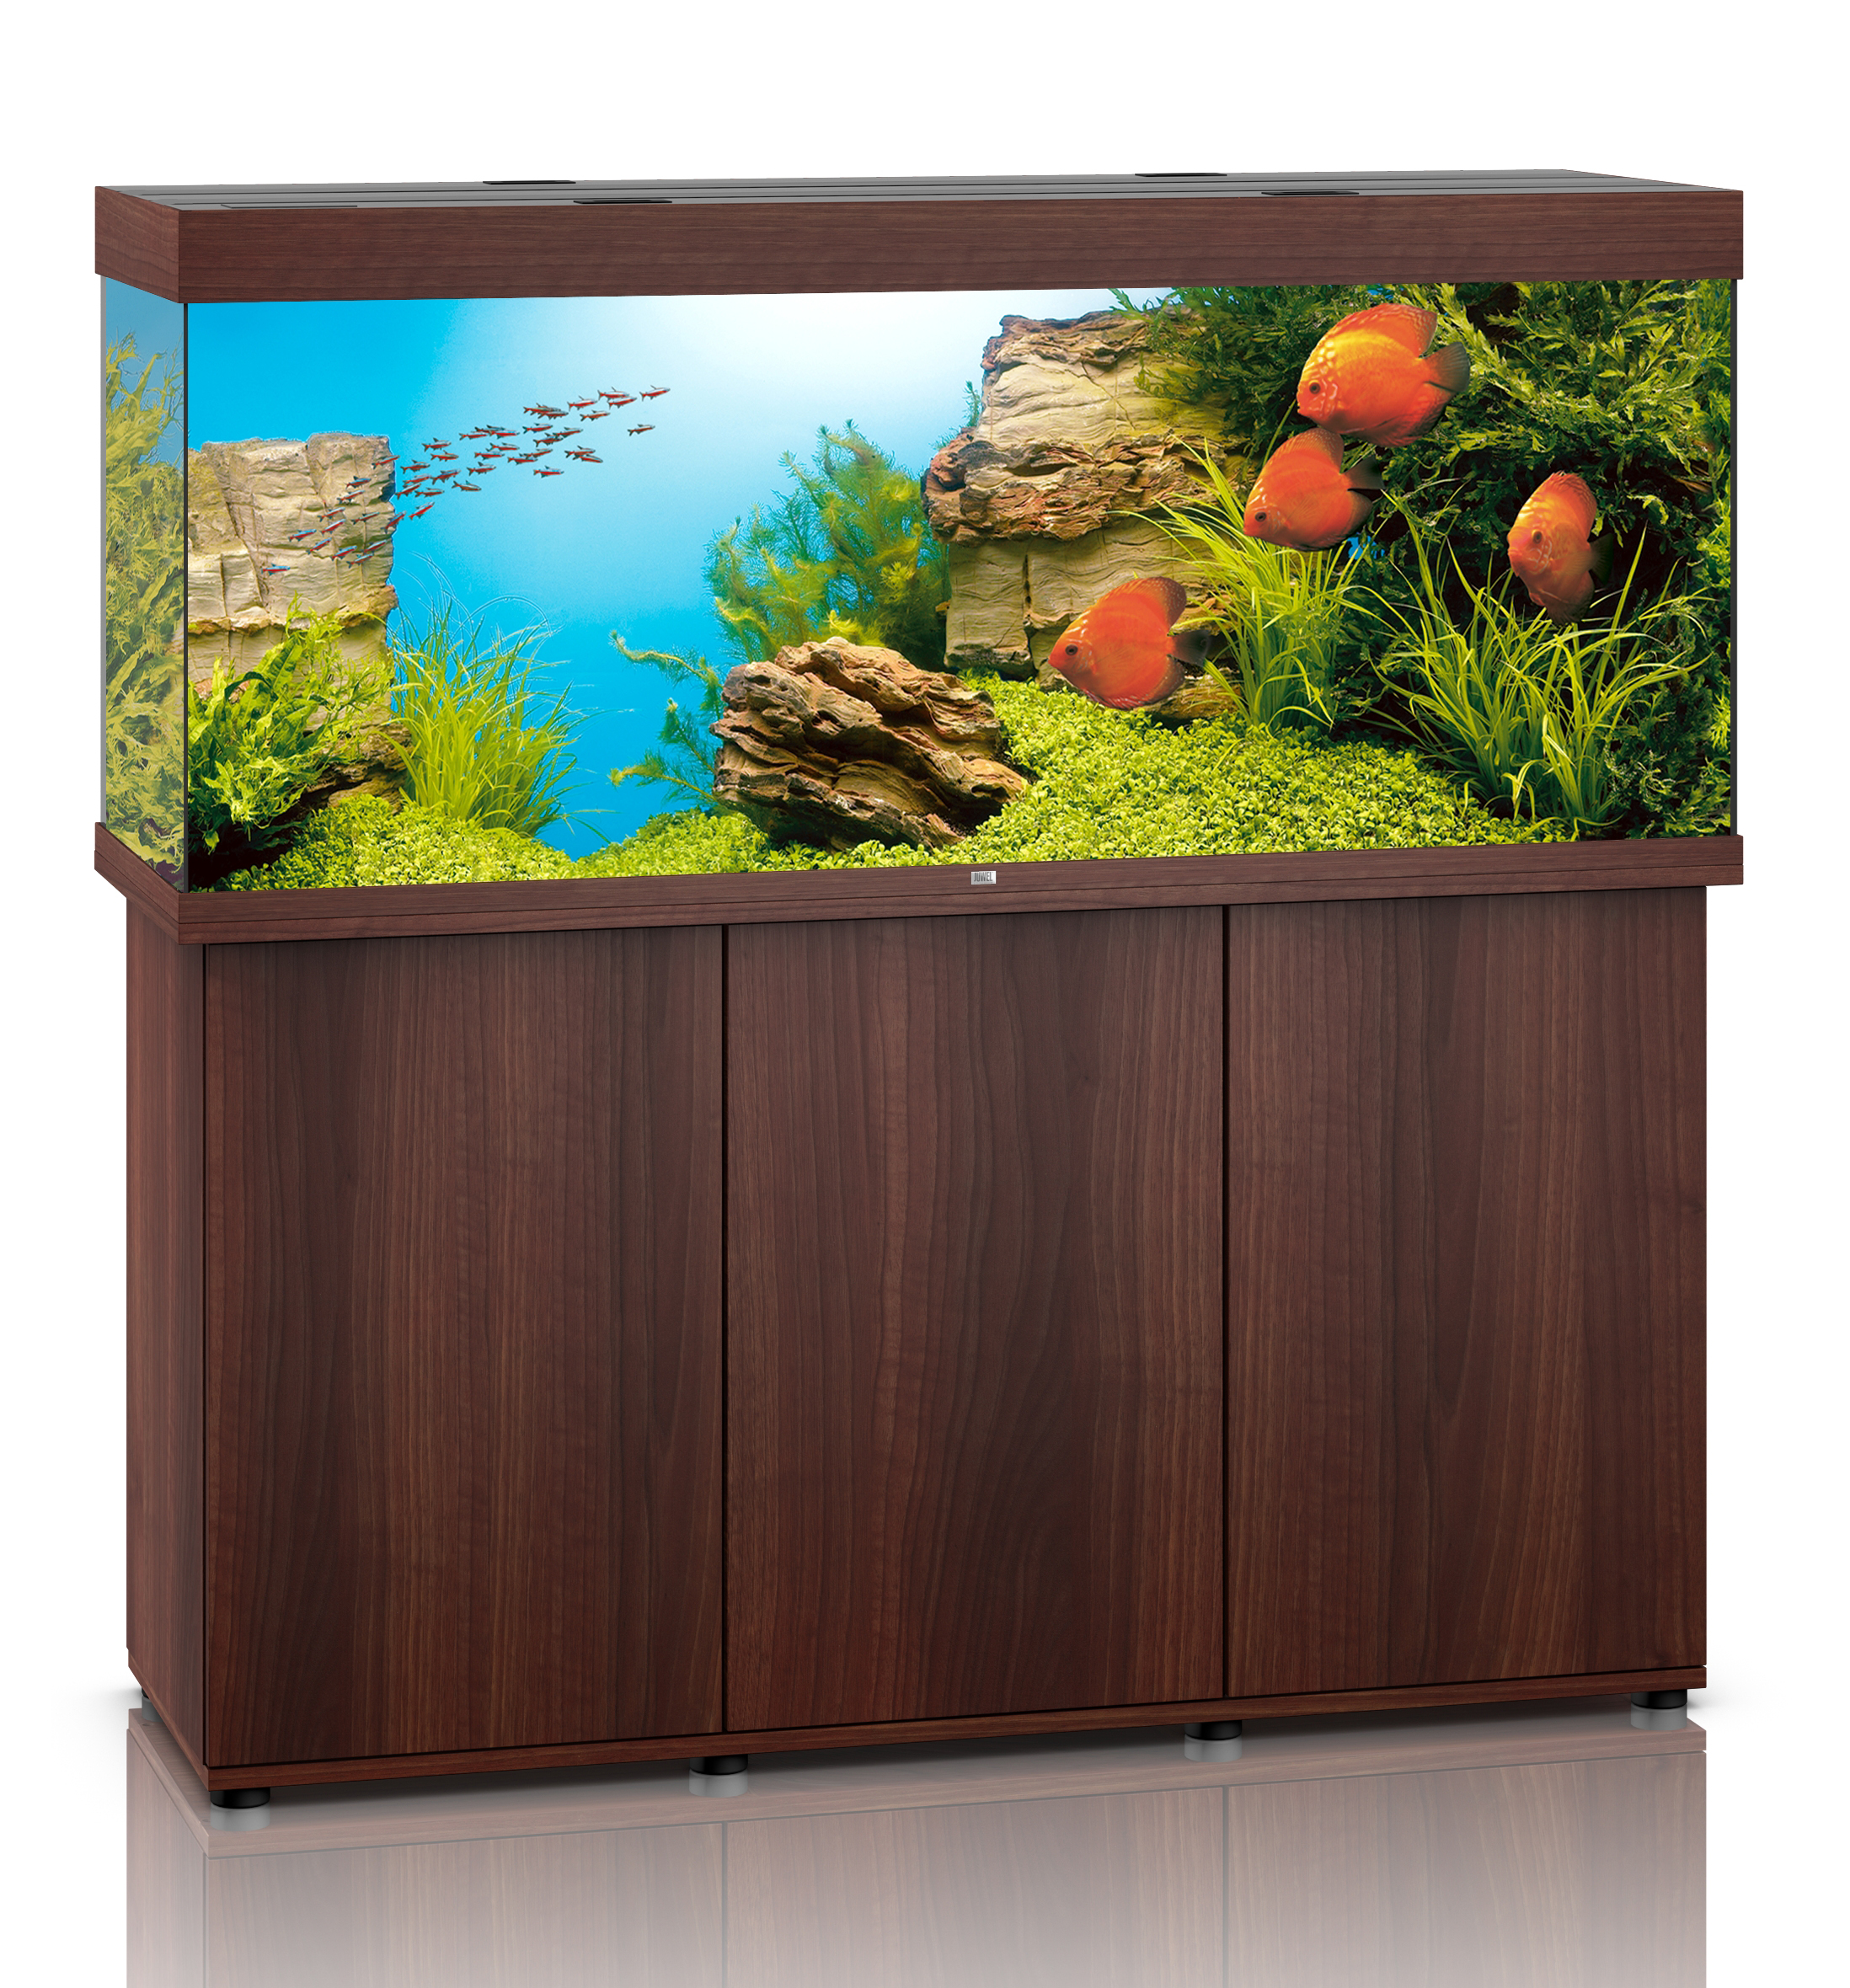 akvarium m rkt tr rio 450 led juwel juwel m rkt tr m bler akvarier akvaristik. Black Bedroom Furniture Sets. Home Design Ideas